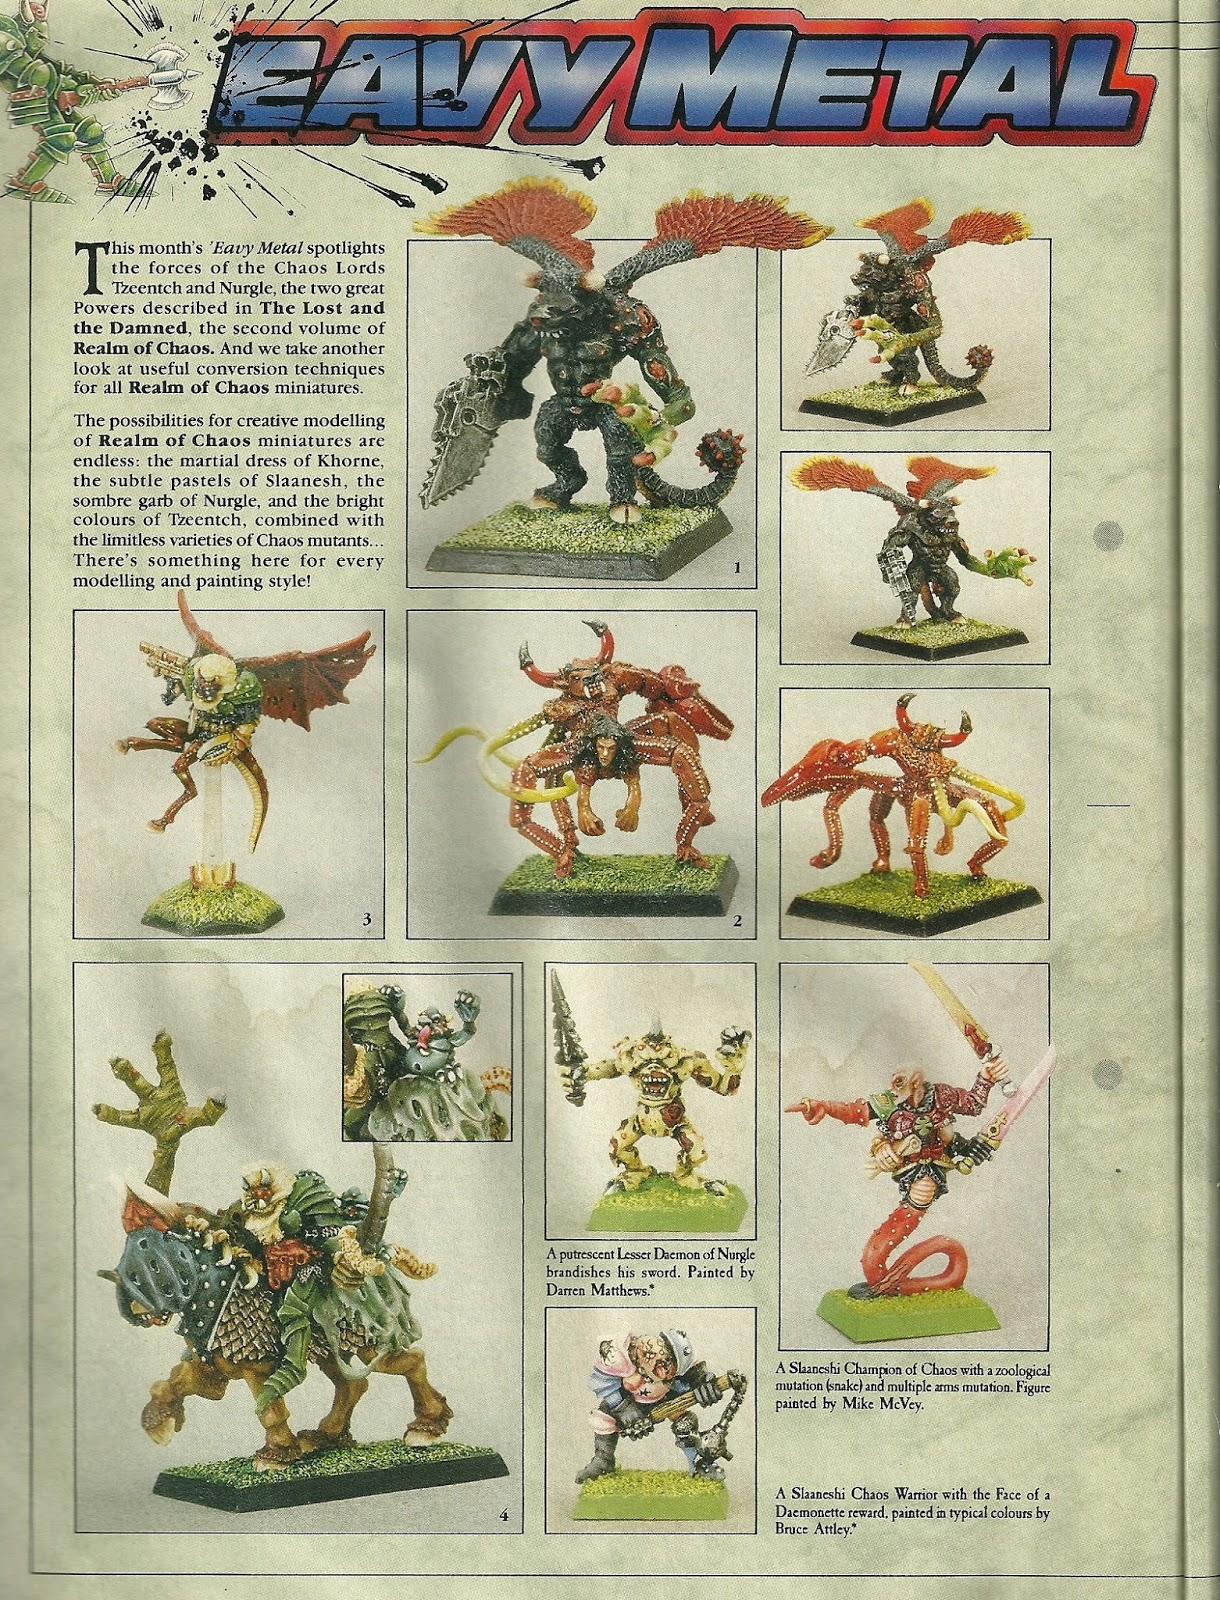 Some inspiring Realm of Chaos miniatures and conversions here, including the famous snake tailed Slaaneshi champion and the unreleased plaguebearer the ...